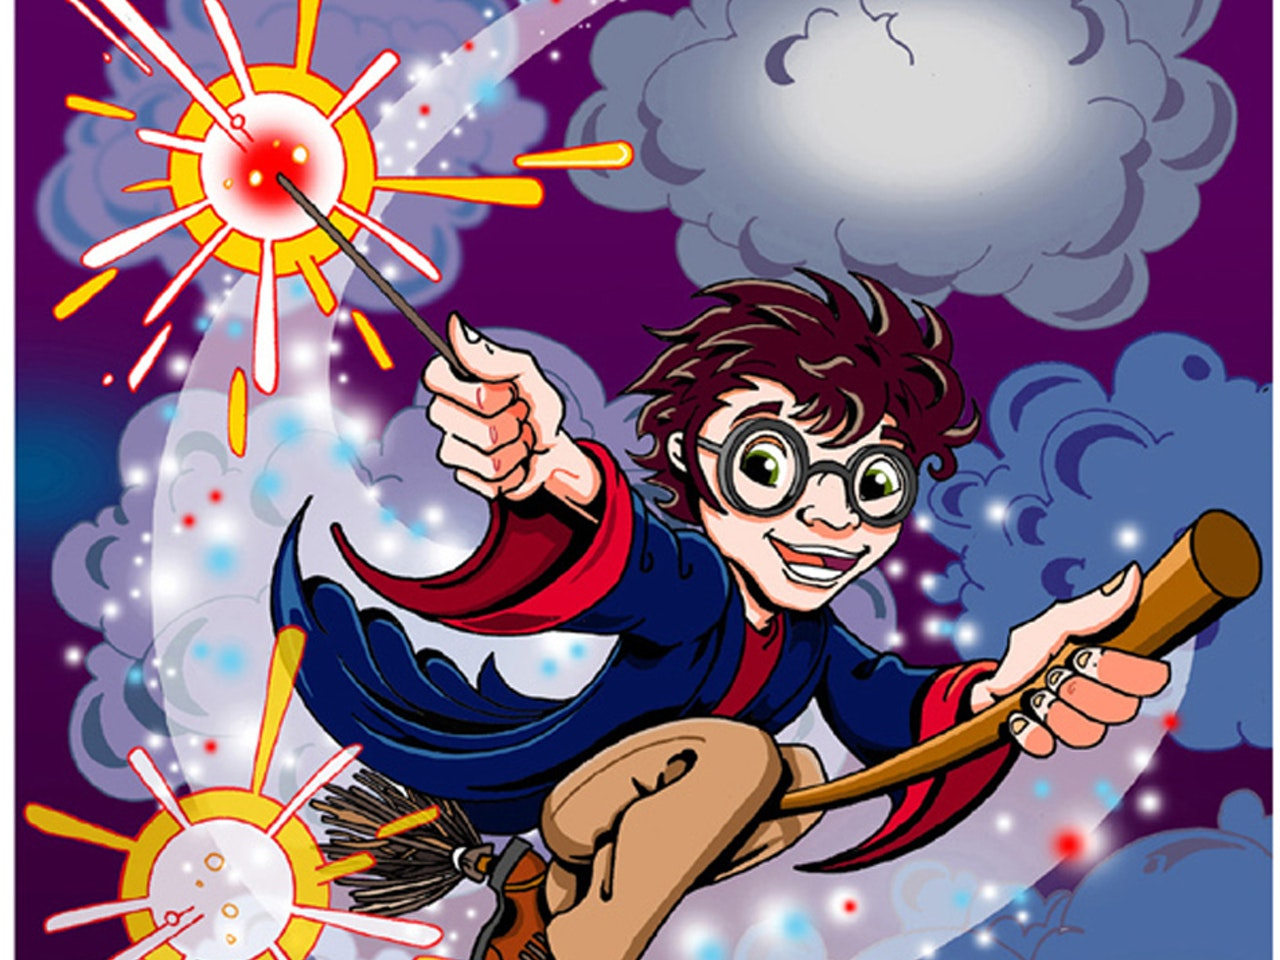 Cool friendly funny Funky Happy manga anime childrens cartoon comic strip magic spells wizard